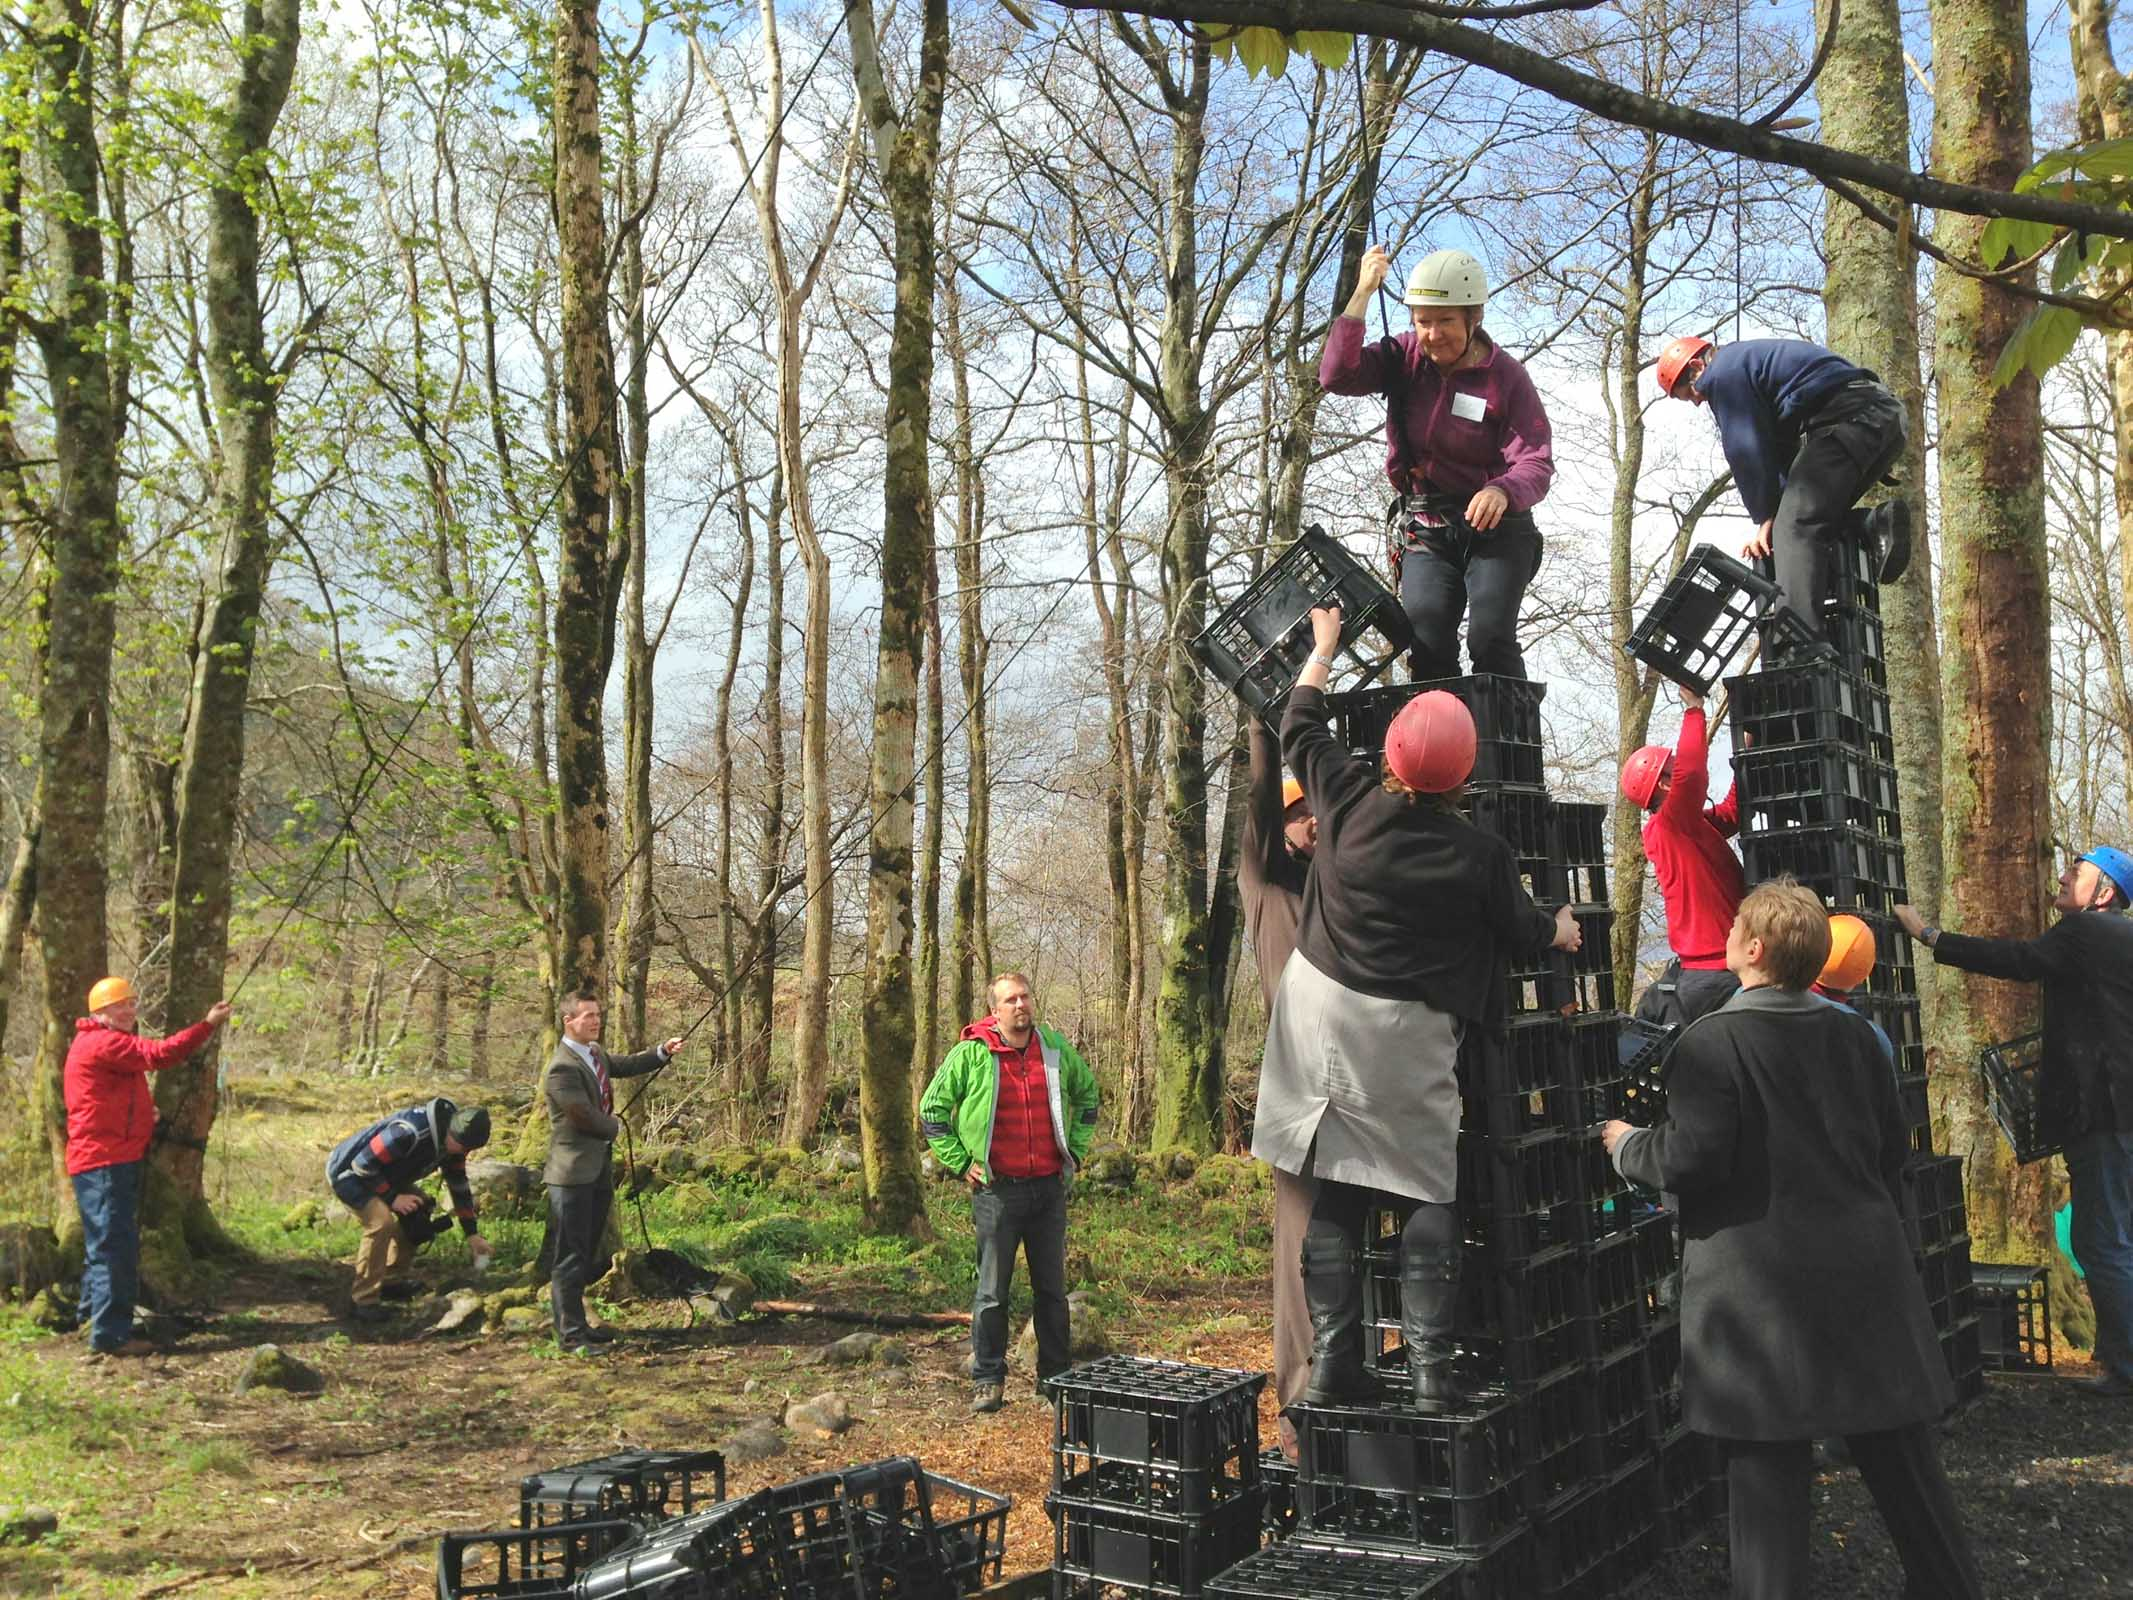 Family enjoys crate stacking fun at Woodlands Activity Centre, Glencoe, Scottish Highlands